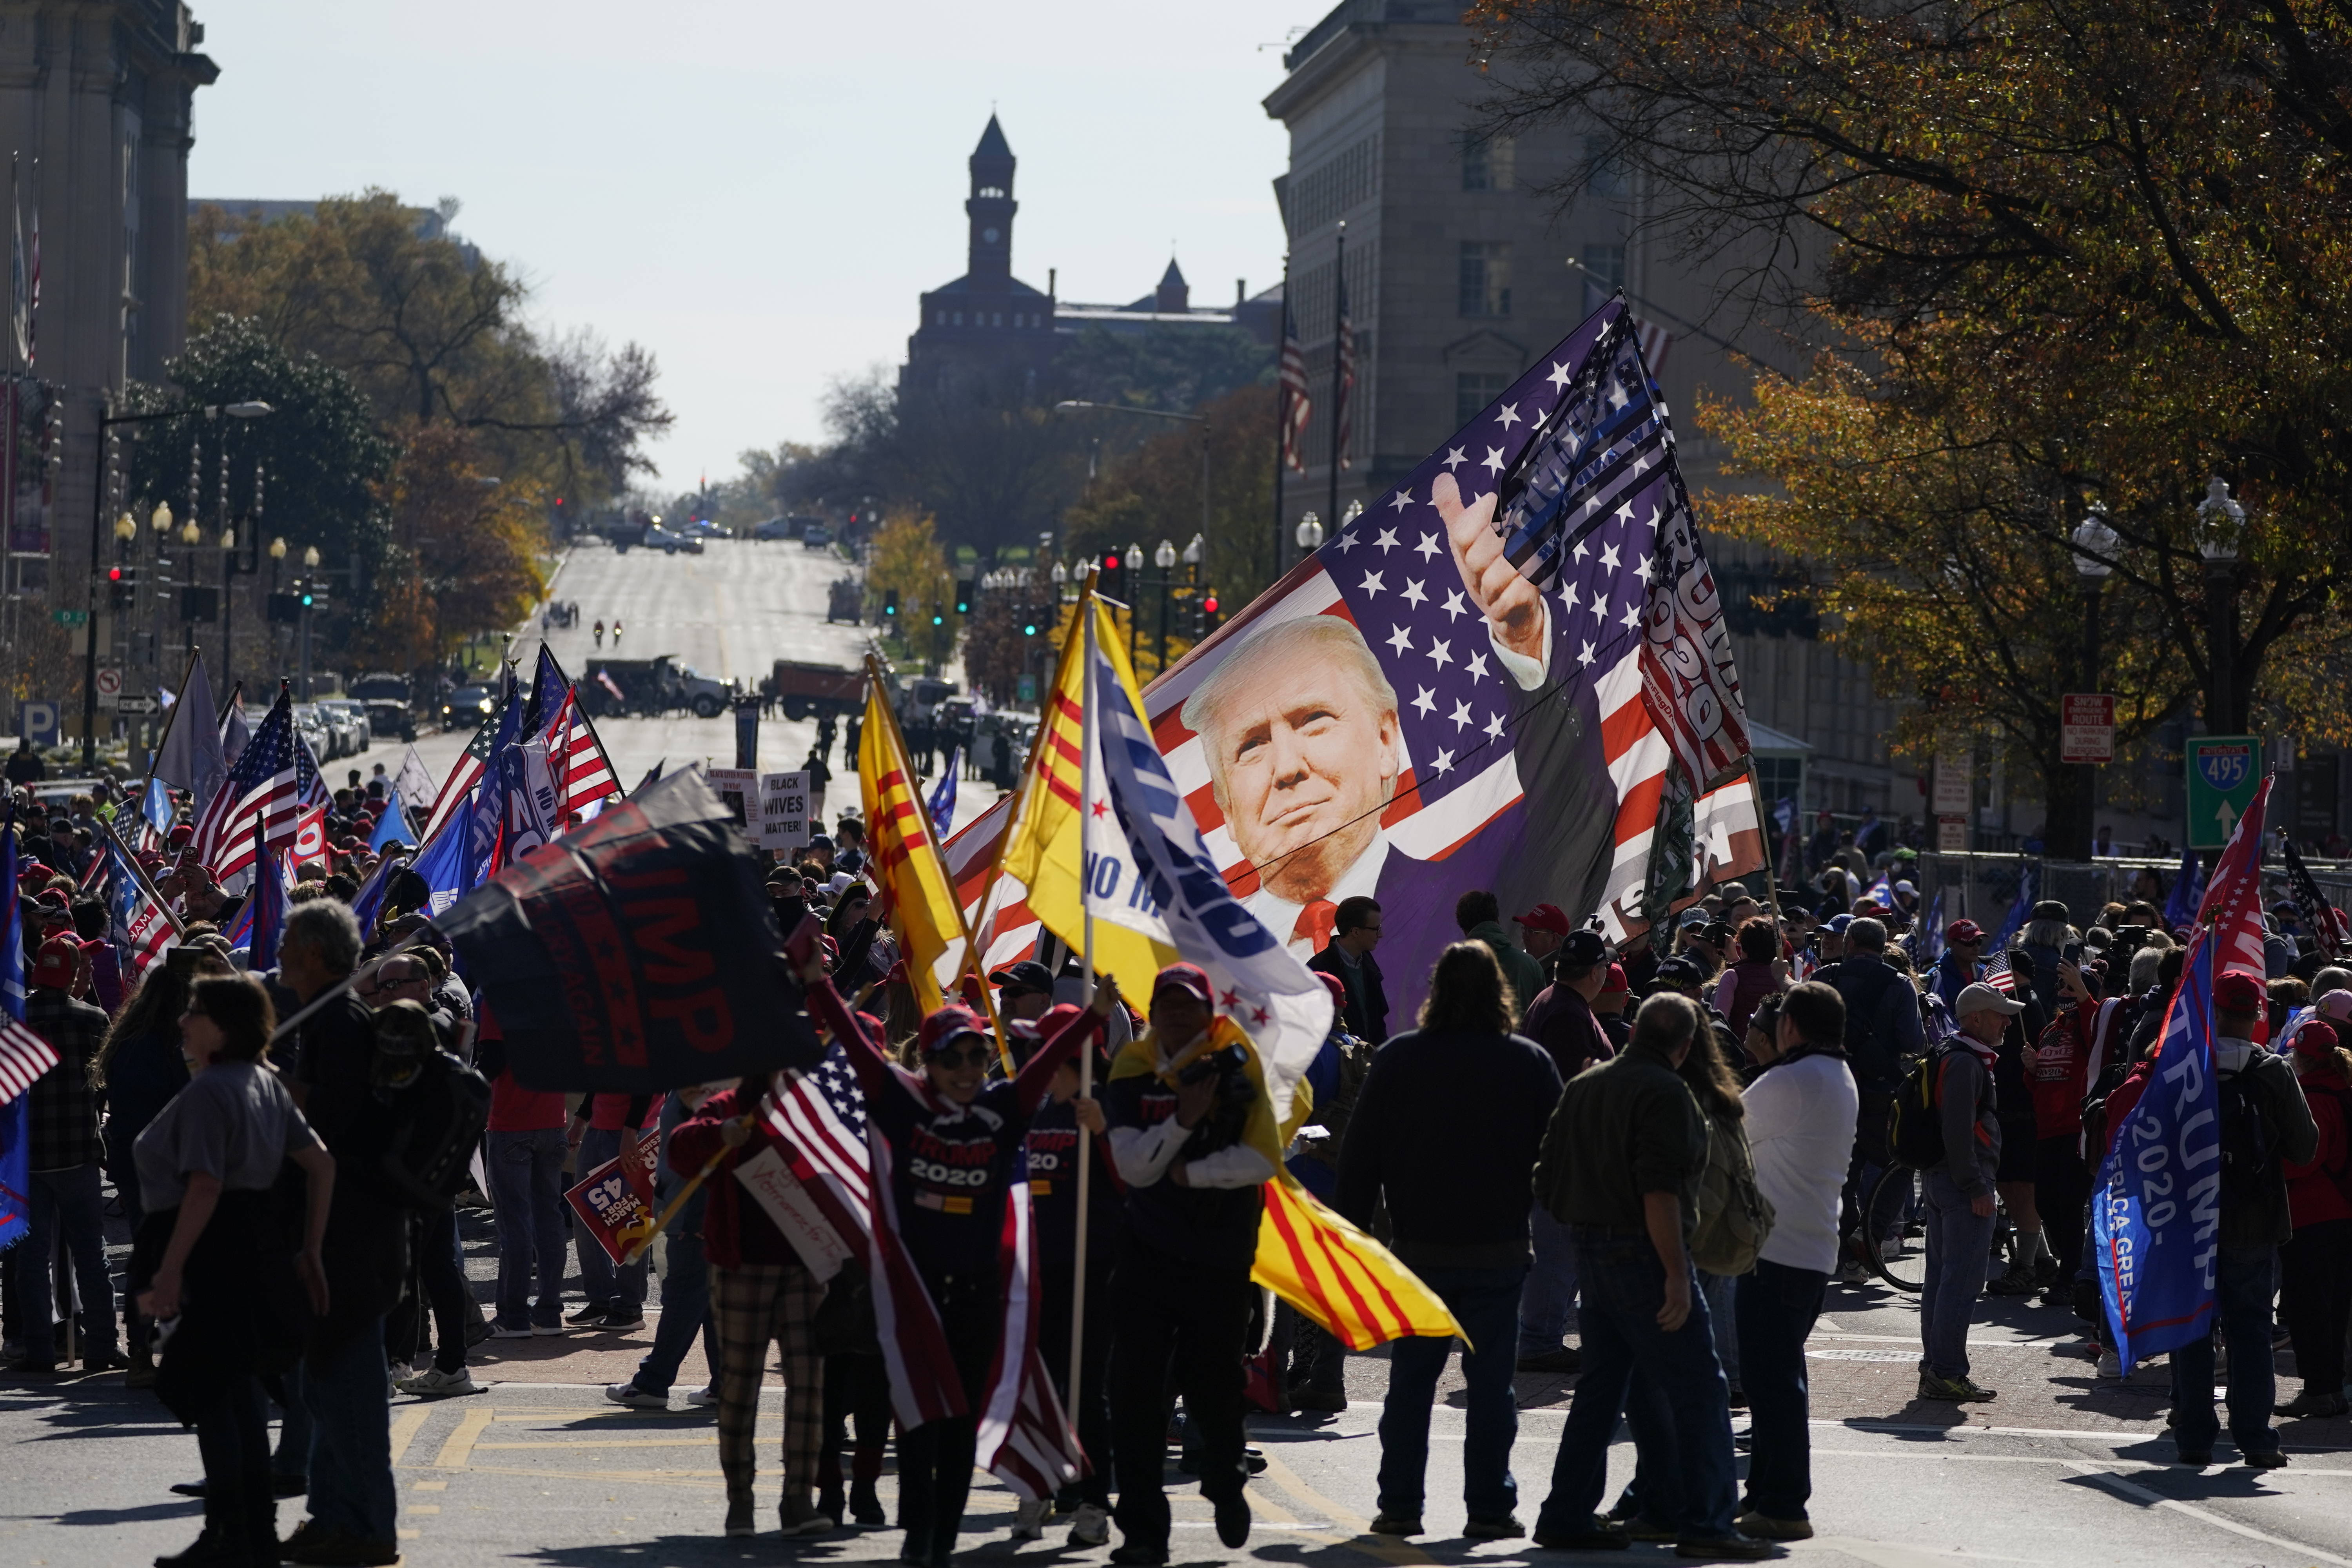 Supporters of President Trump rally on Saturday in Washington, D.C. (Julio Cortez/AP)